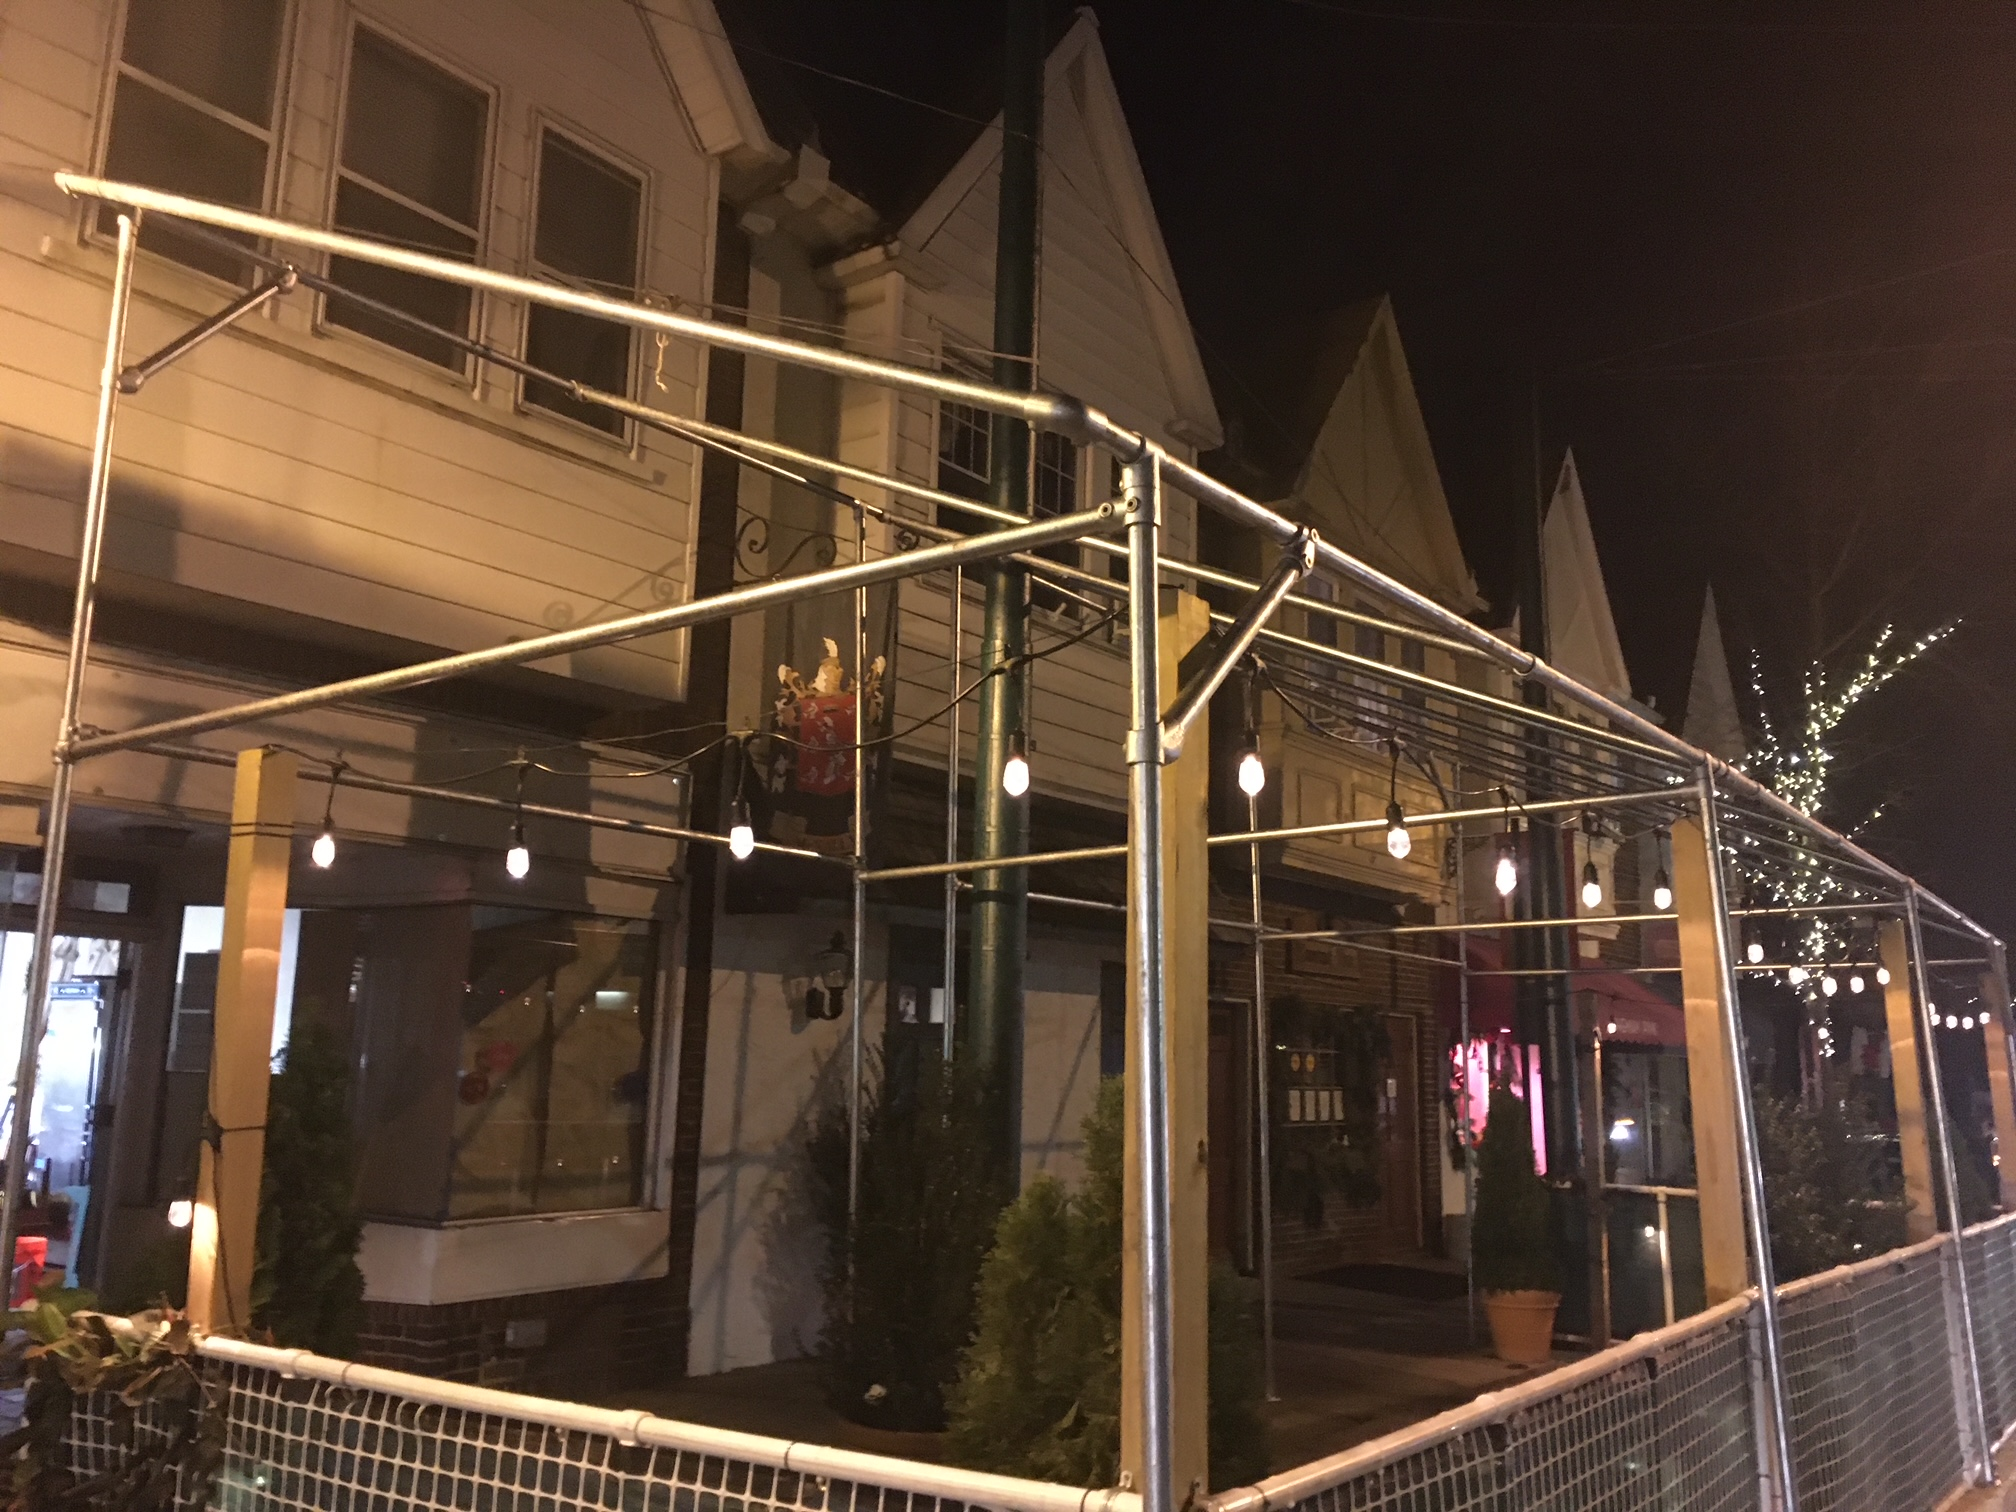 Awning Without Fabric